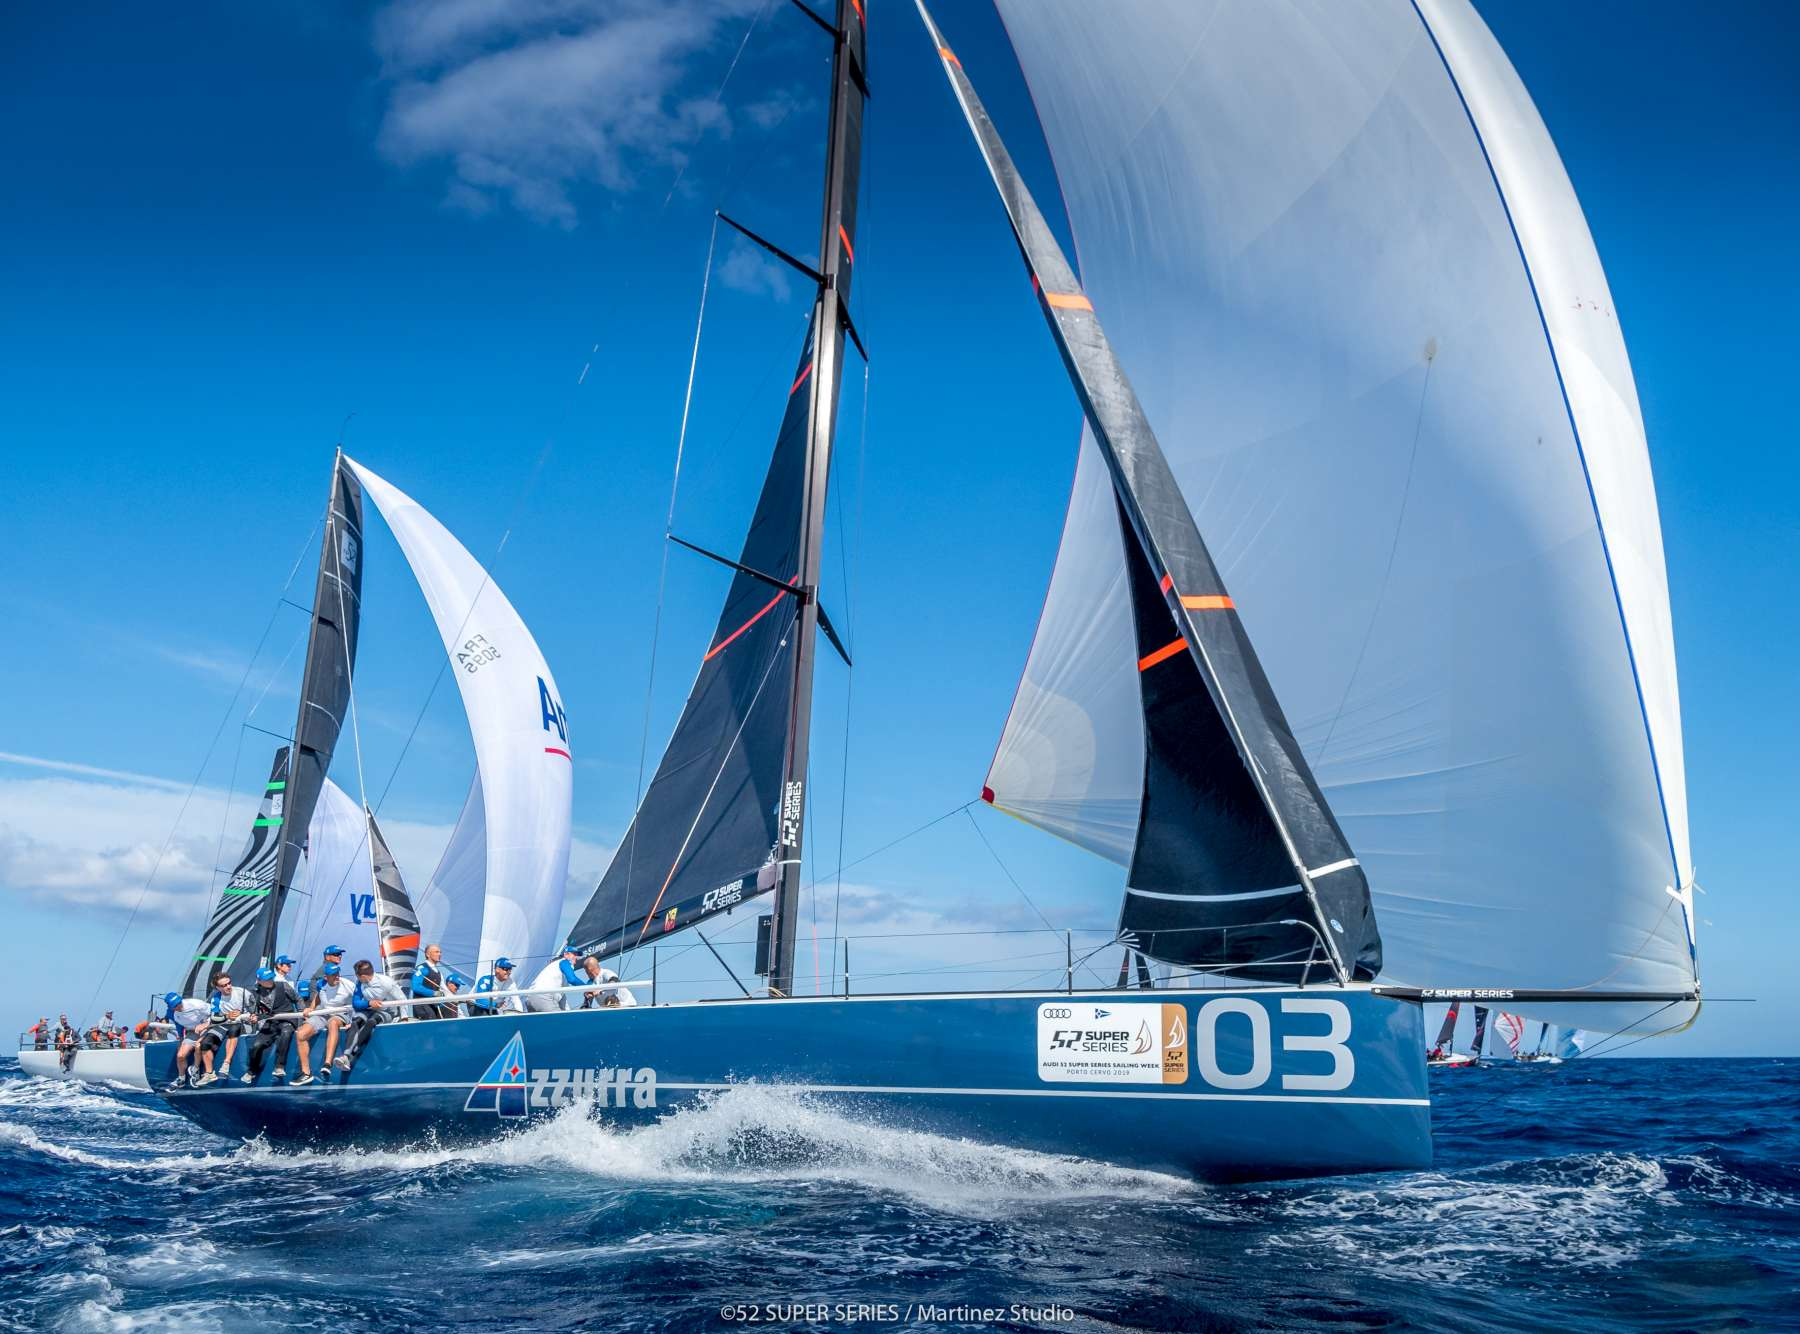 Giornata conclusiva della Audi 52 Super Series Sailing Week  - NEWS - Yacht Club Costa Smeralda